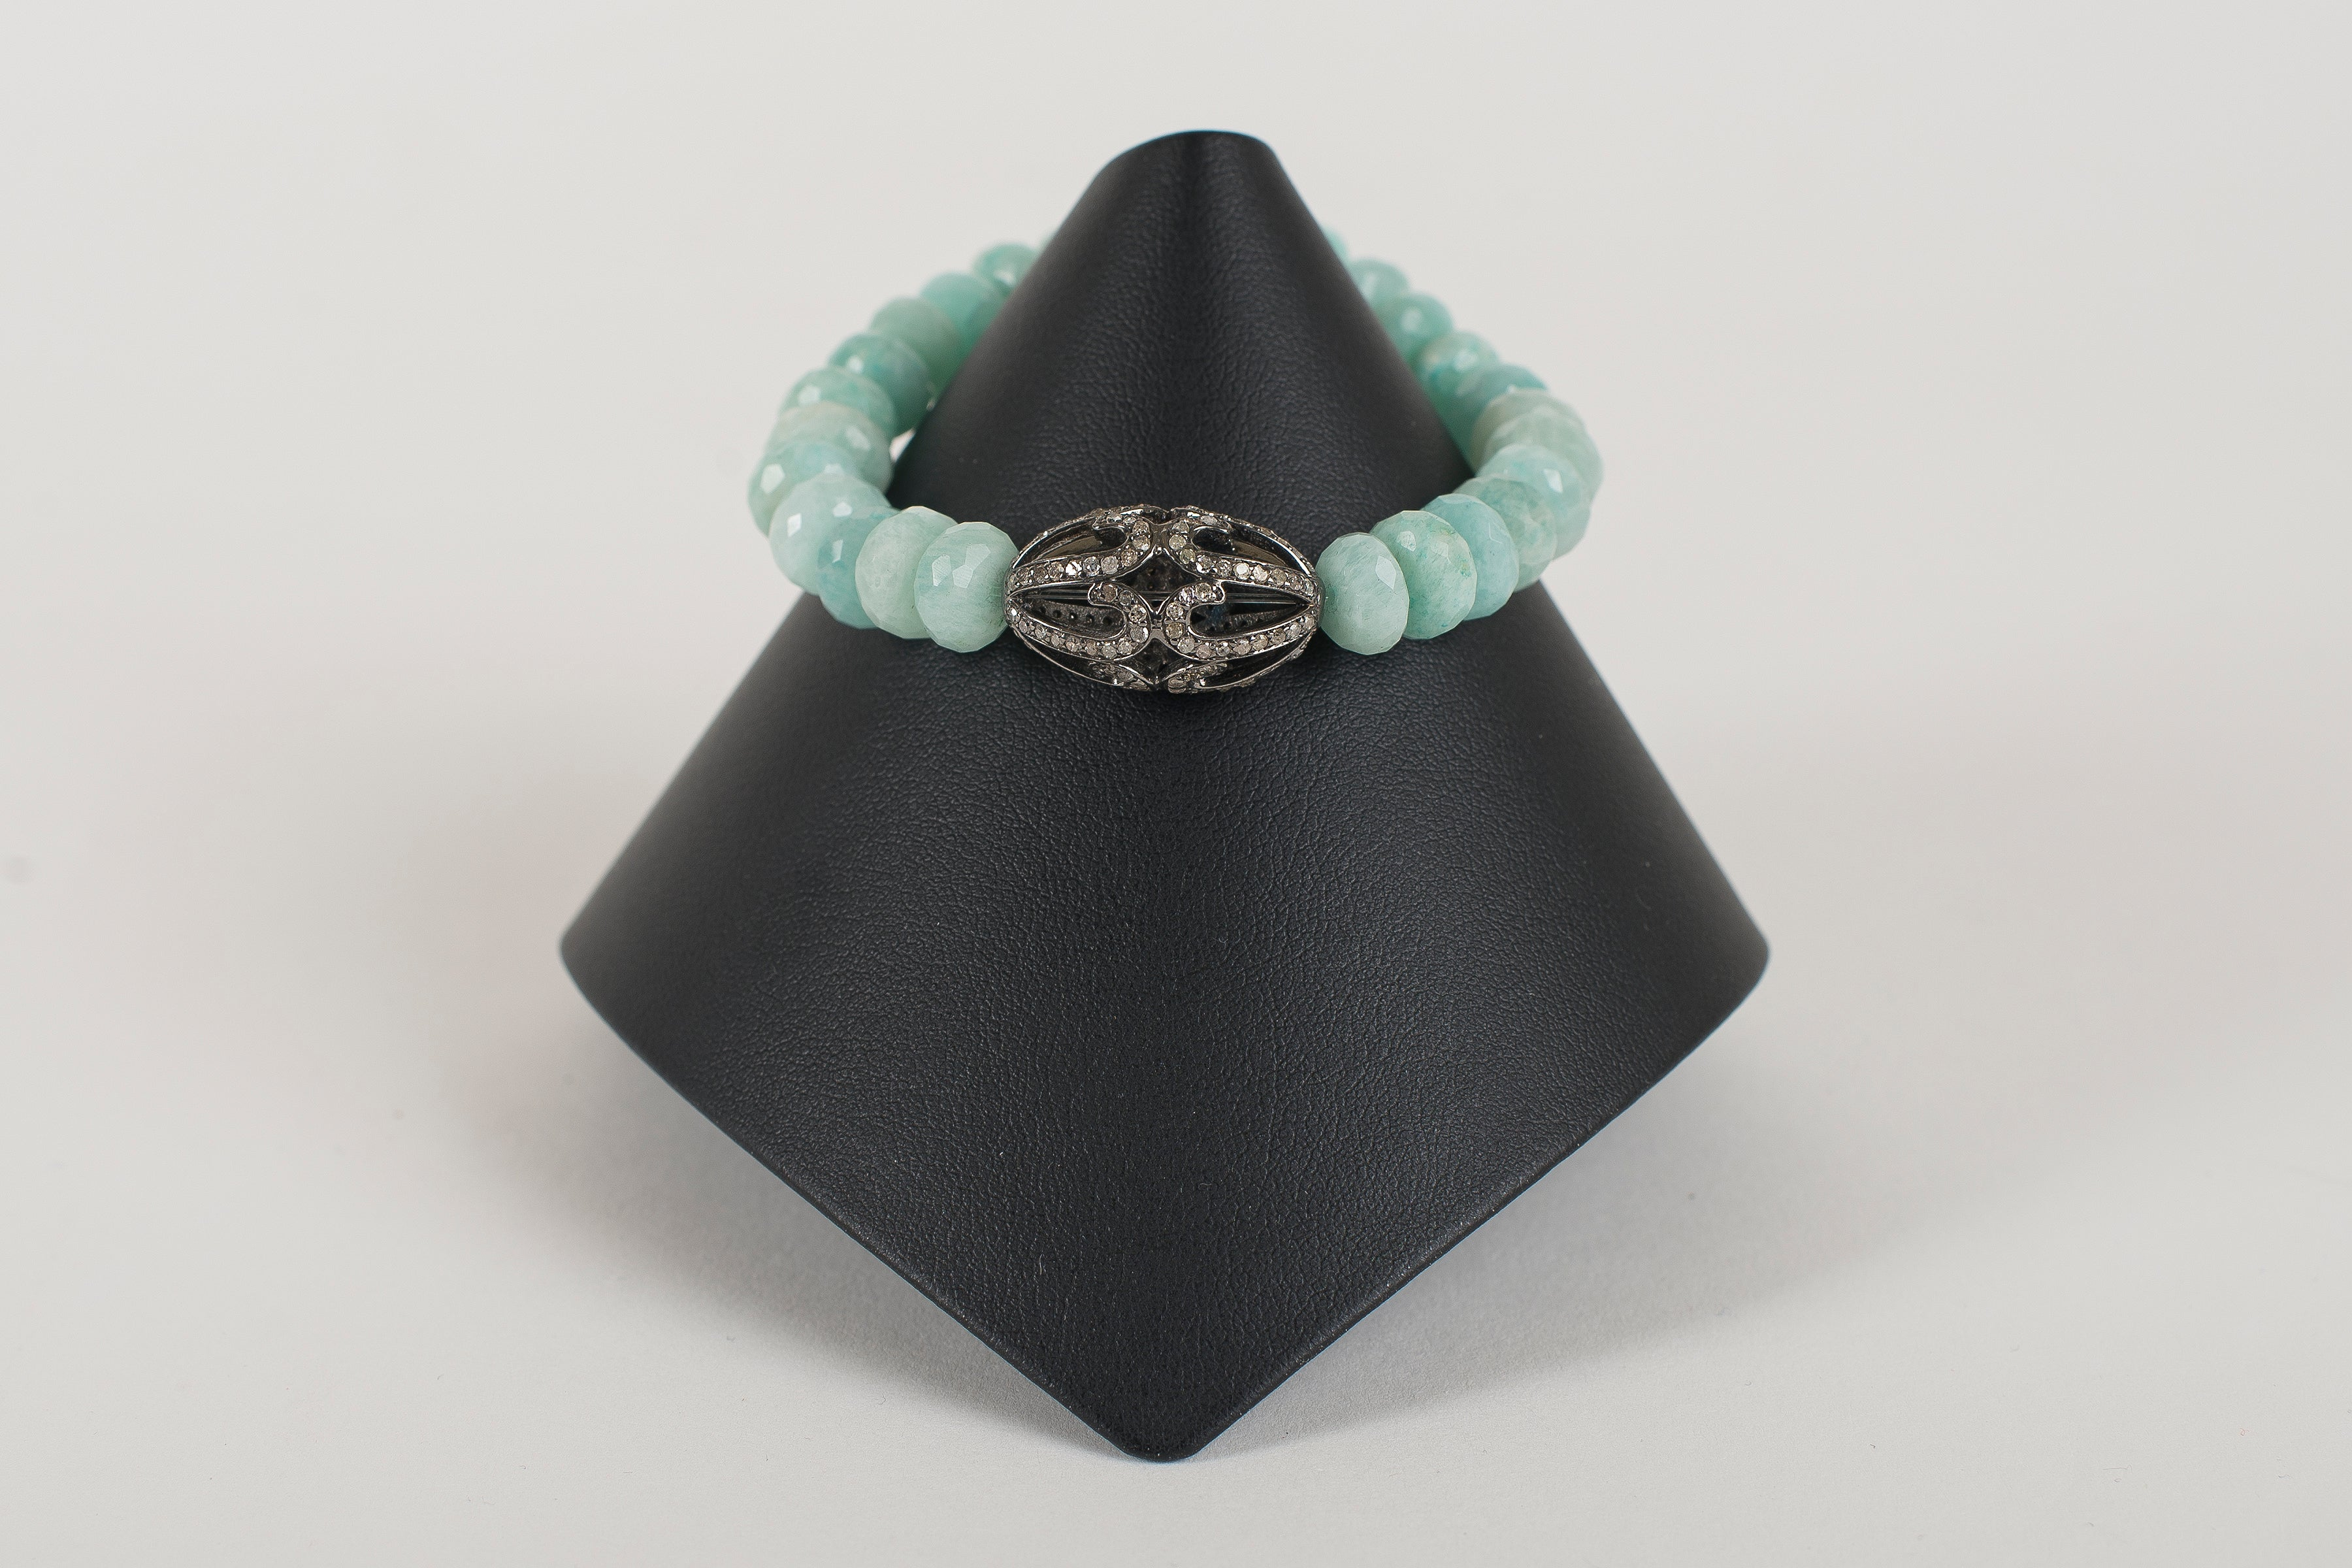 Seafoam Agate Rondelle with Pave Diamond Bead